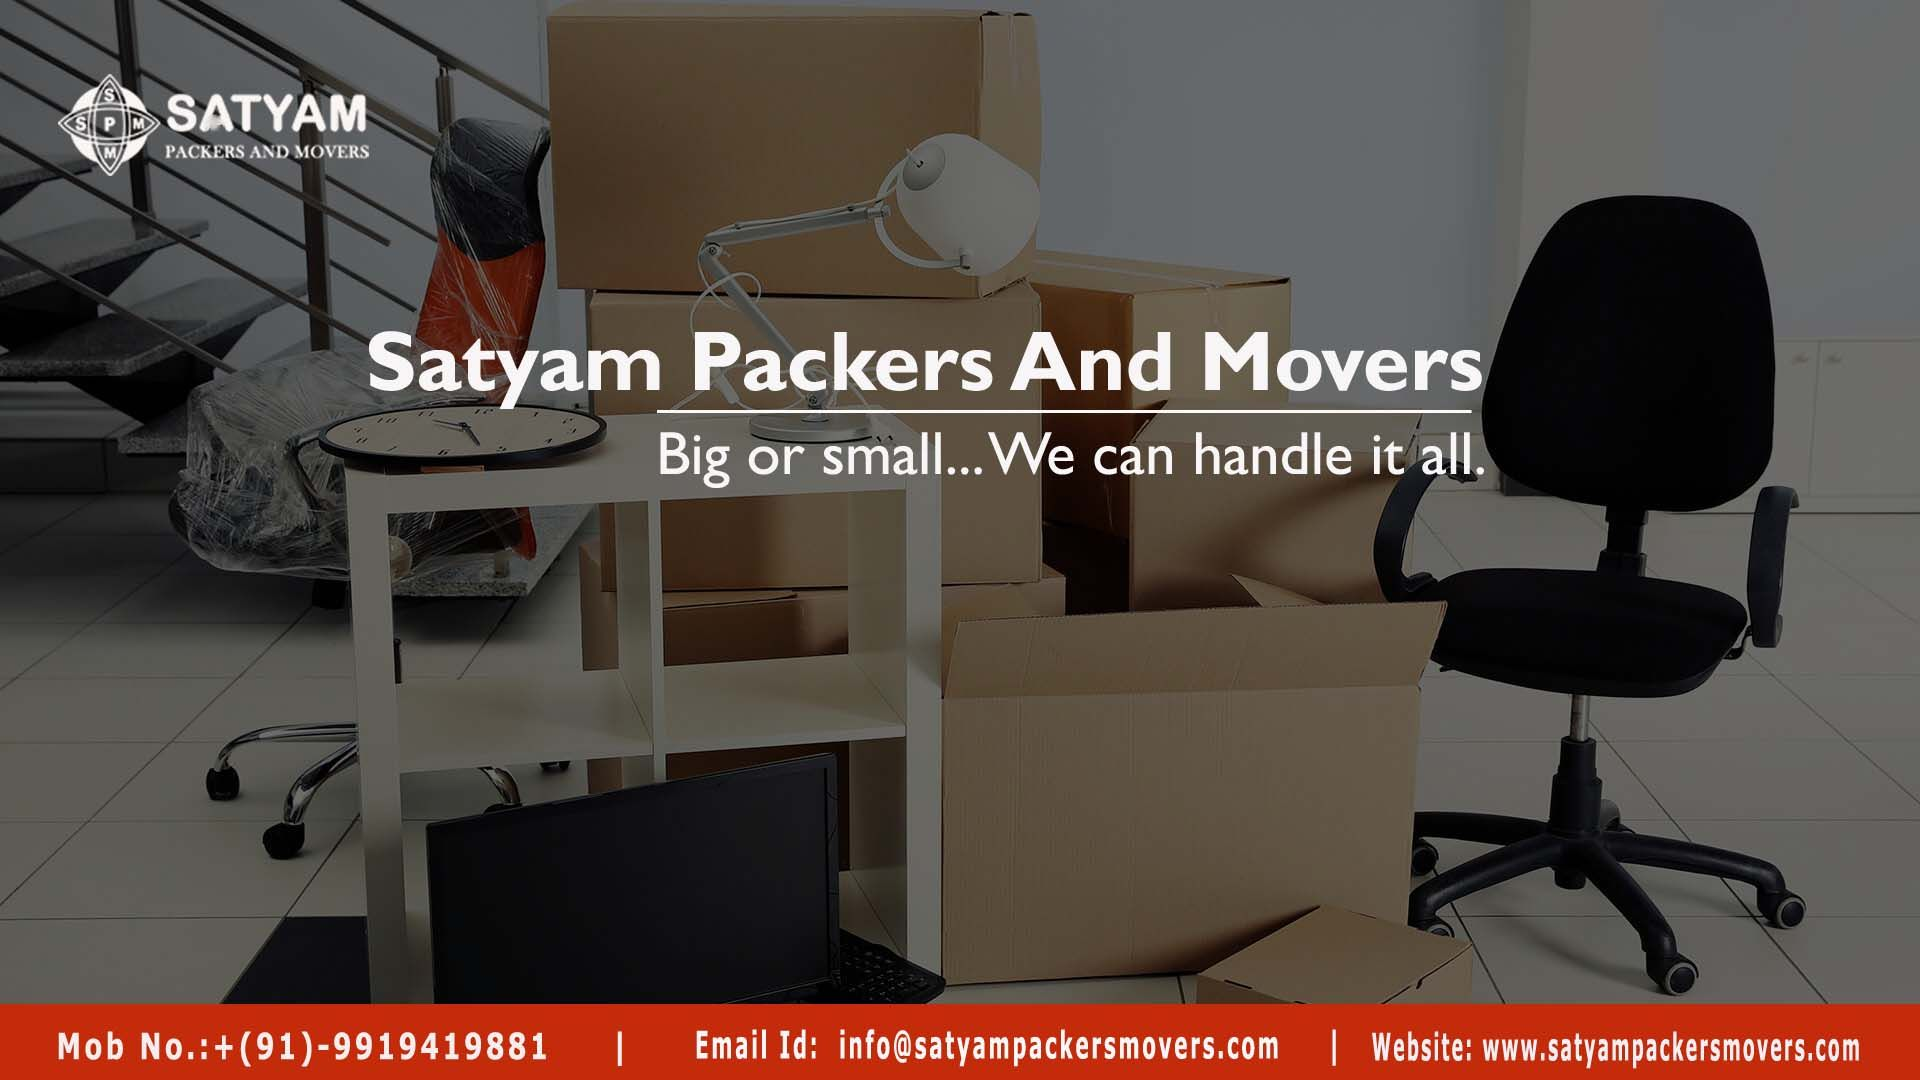 Satyam Packers And Movers Offer Wide Range Of Moving And Packing